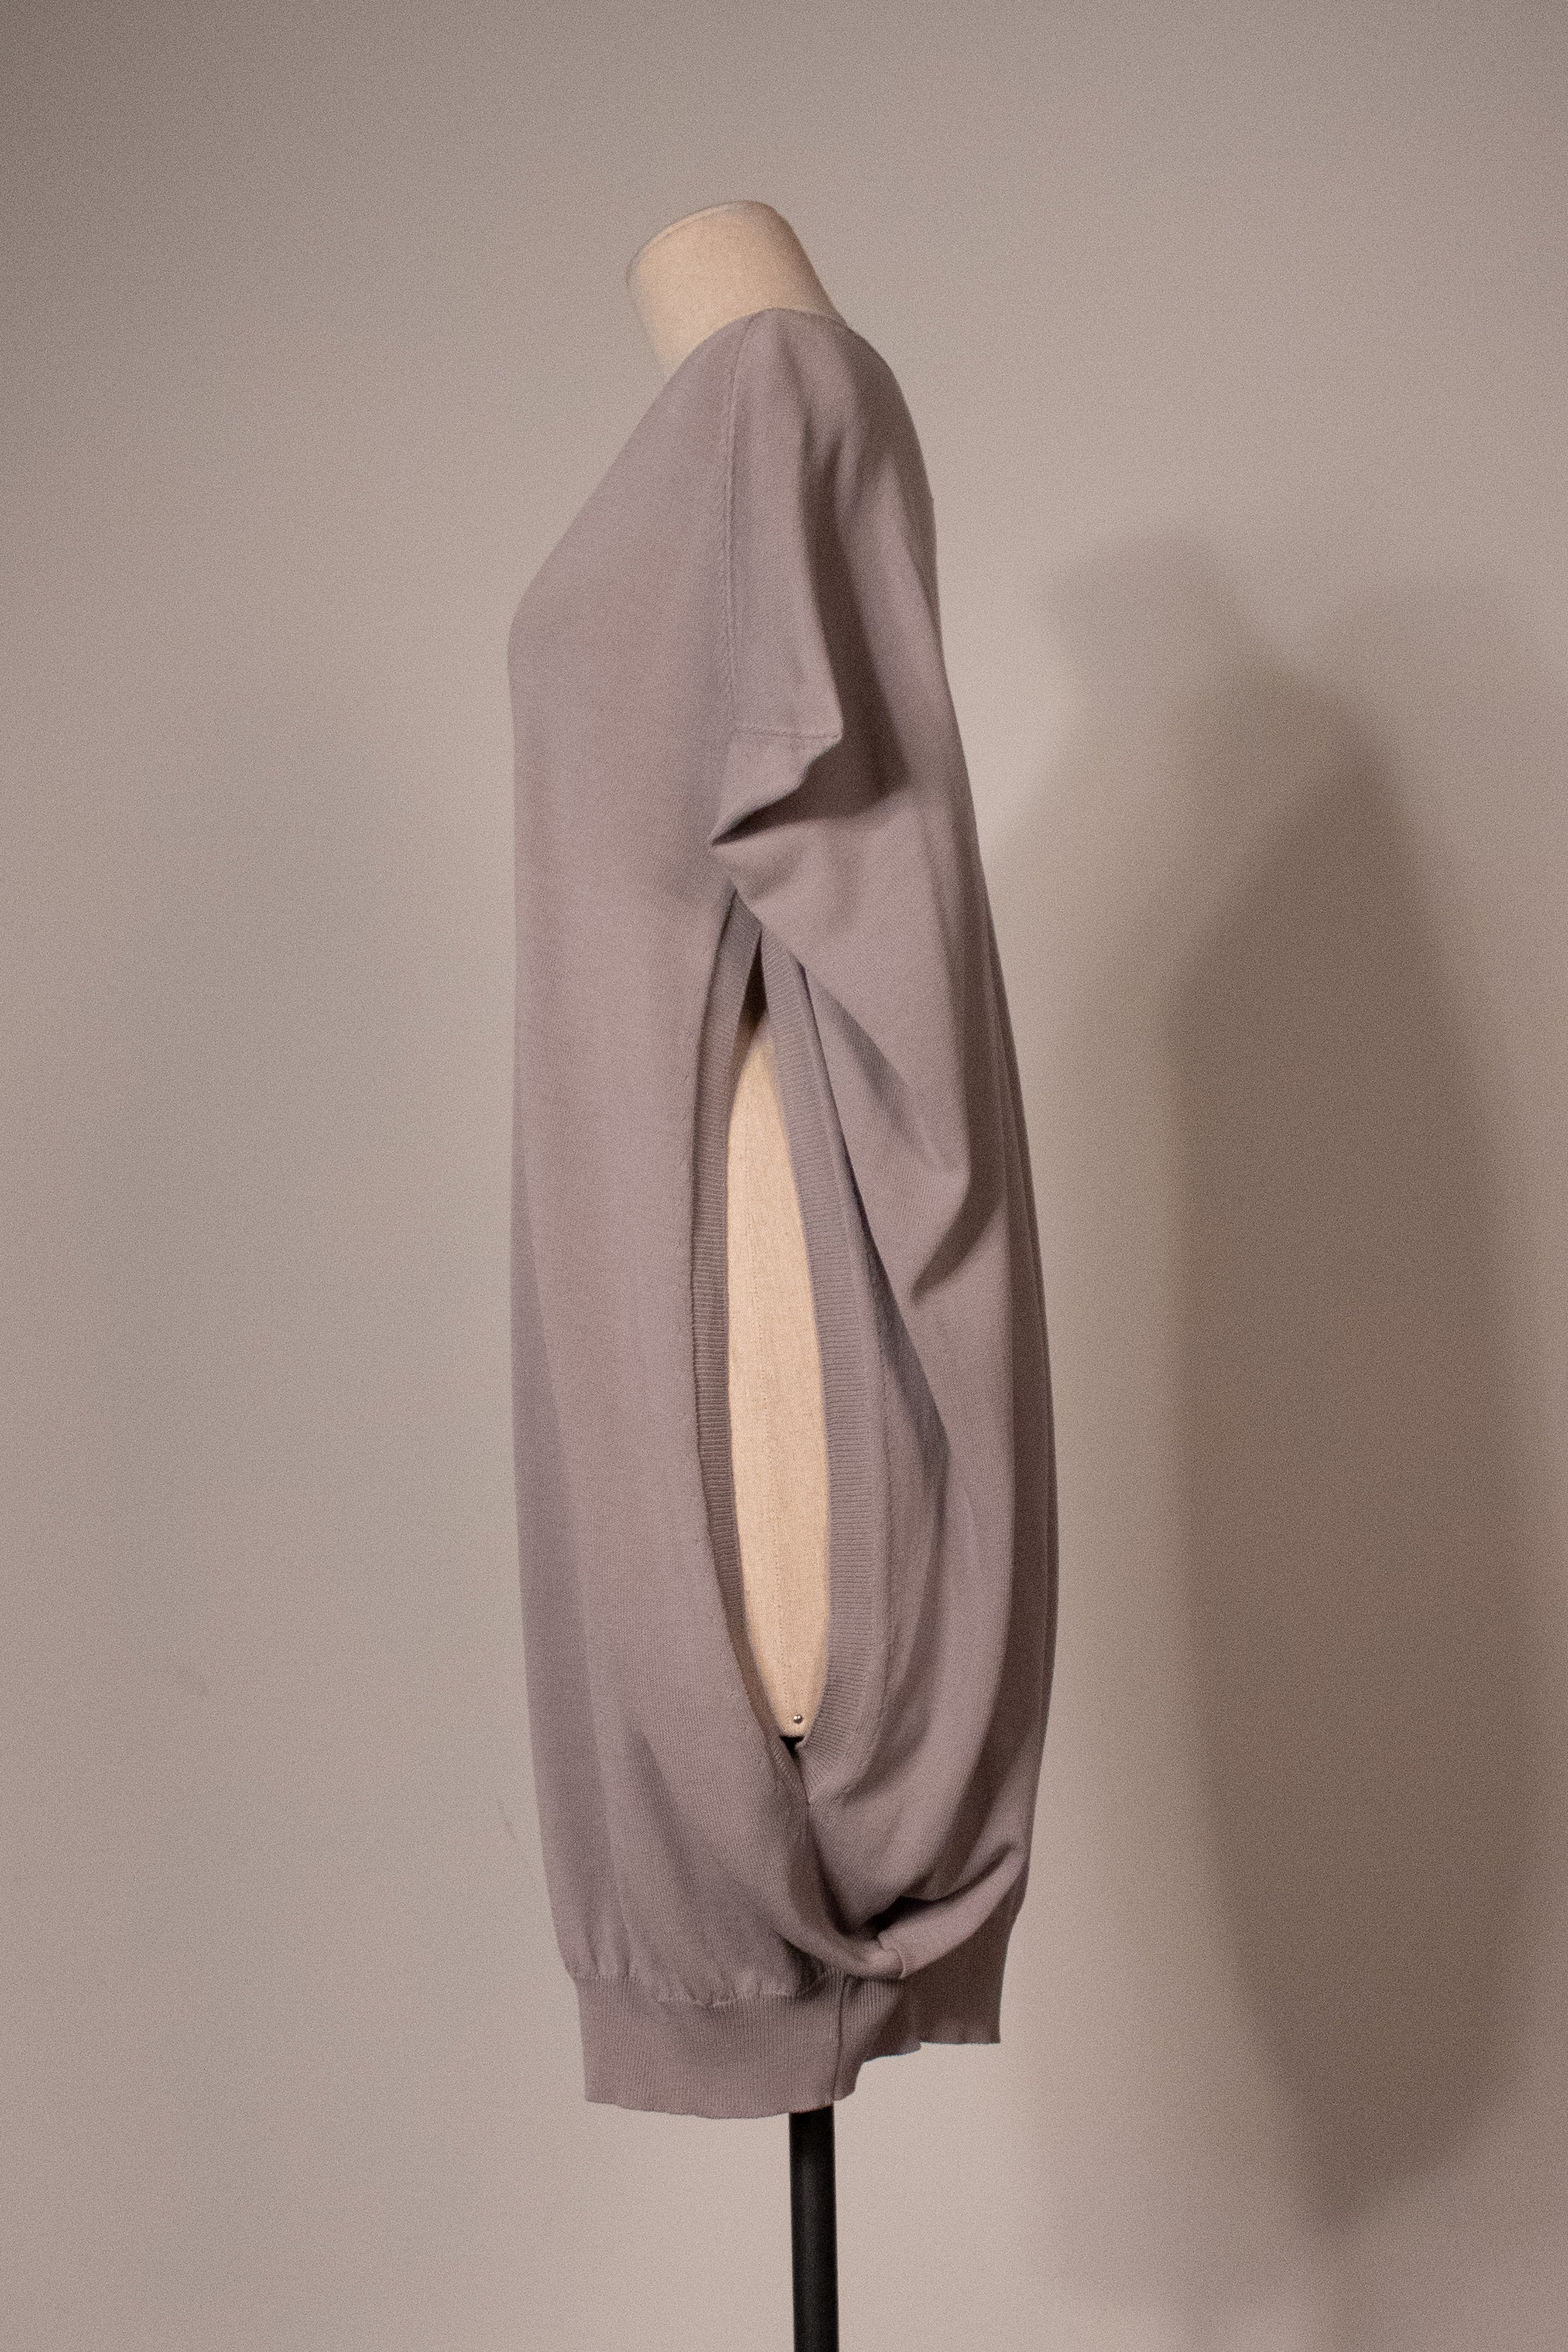 Martin Margiela grey knit dress